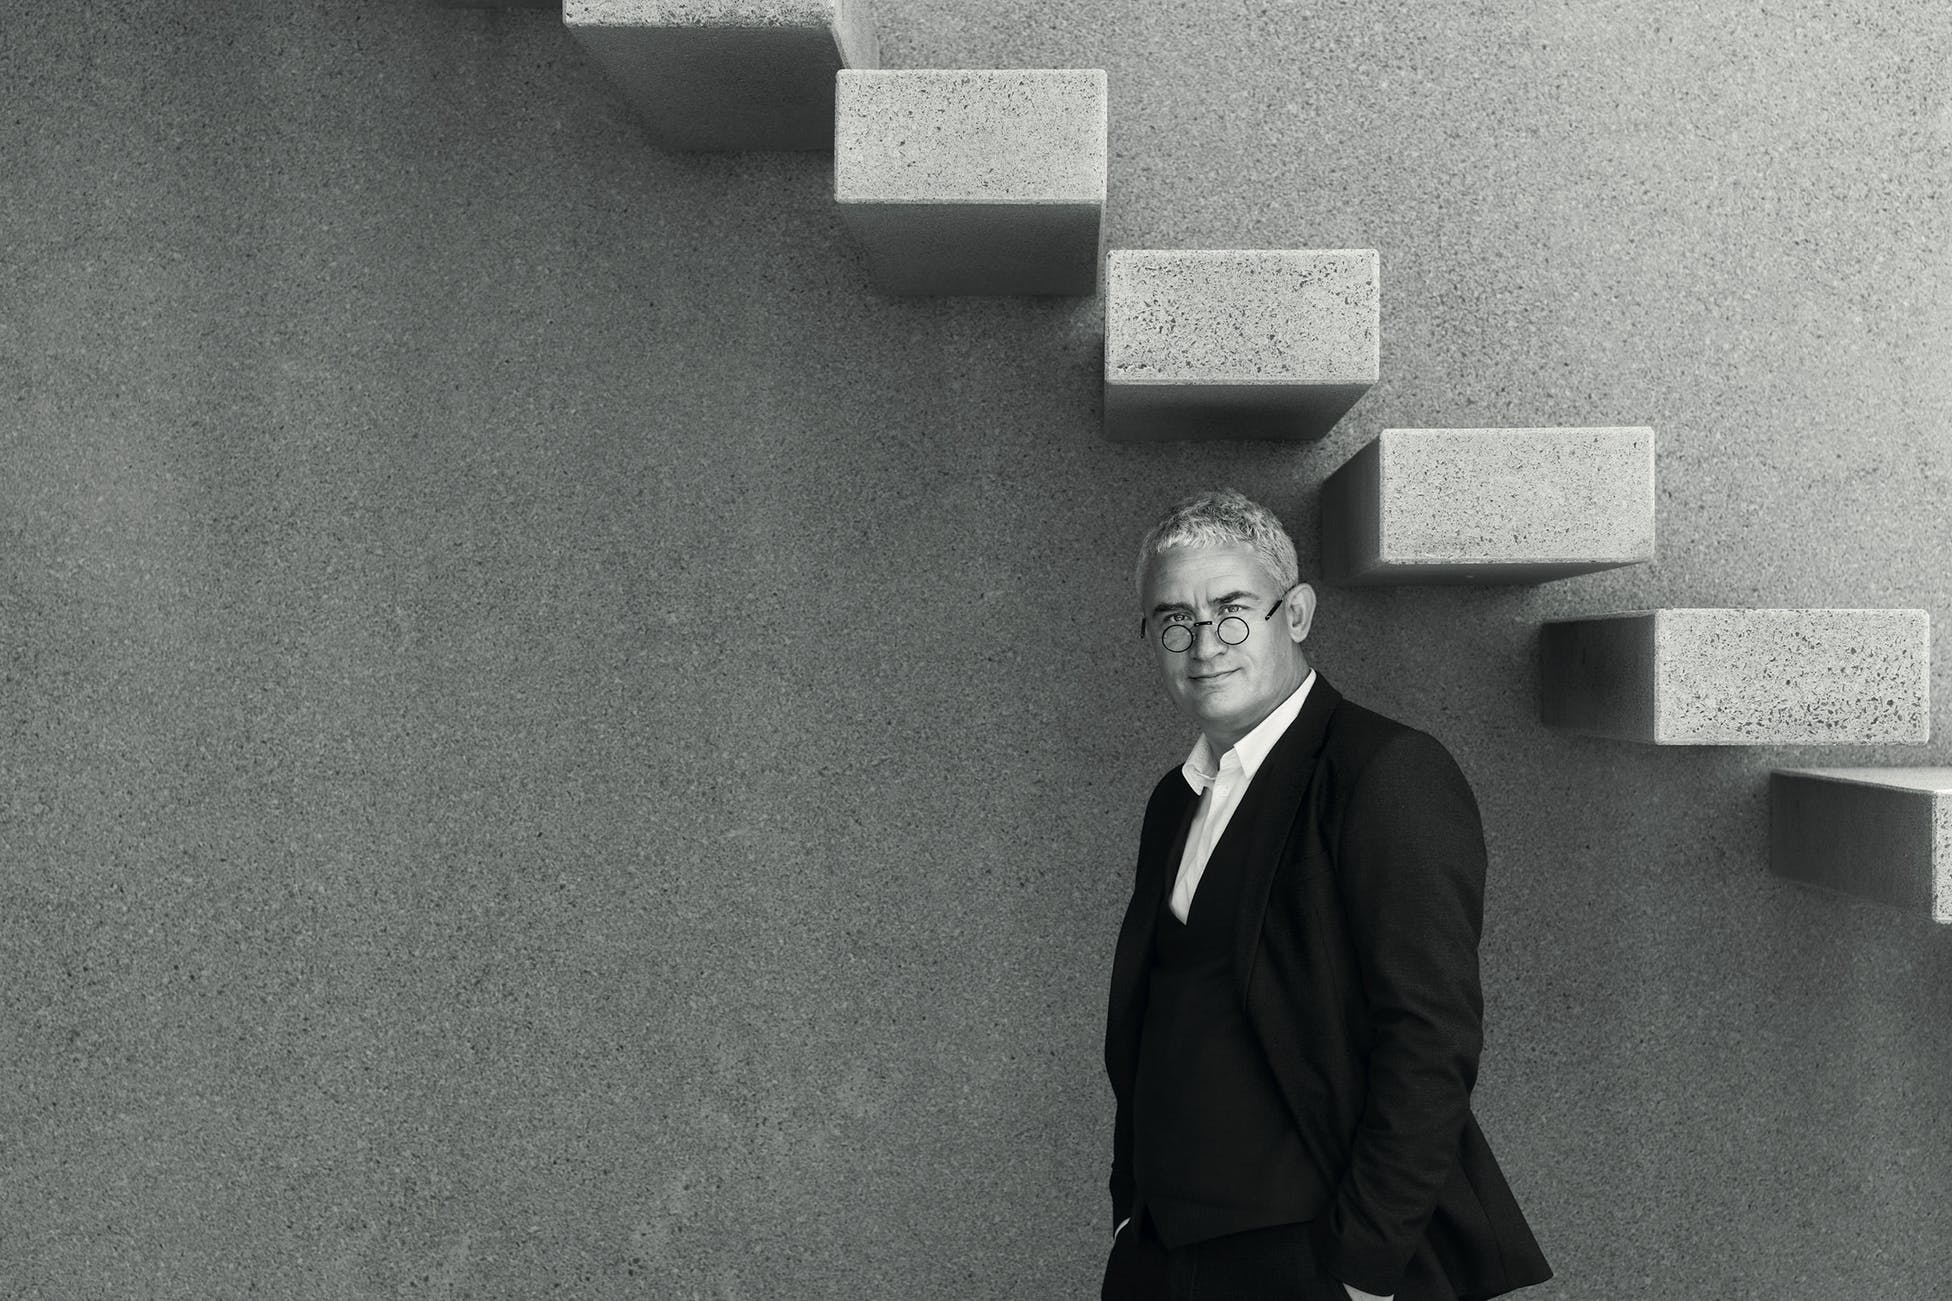 a man standing under a concrete staircase